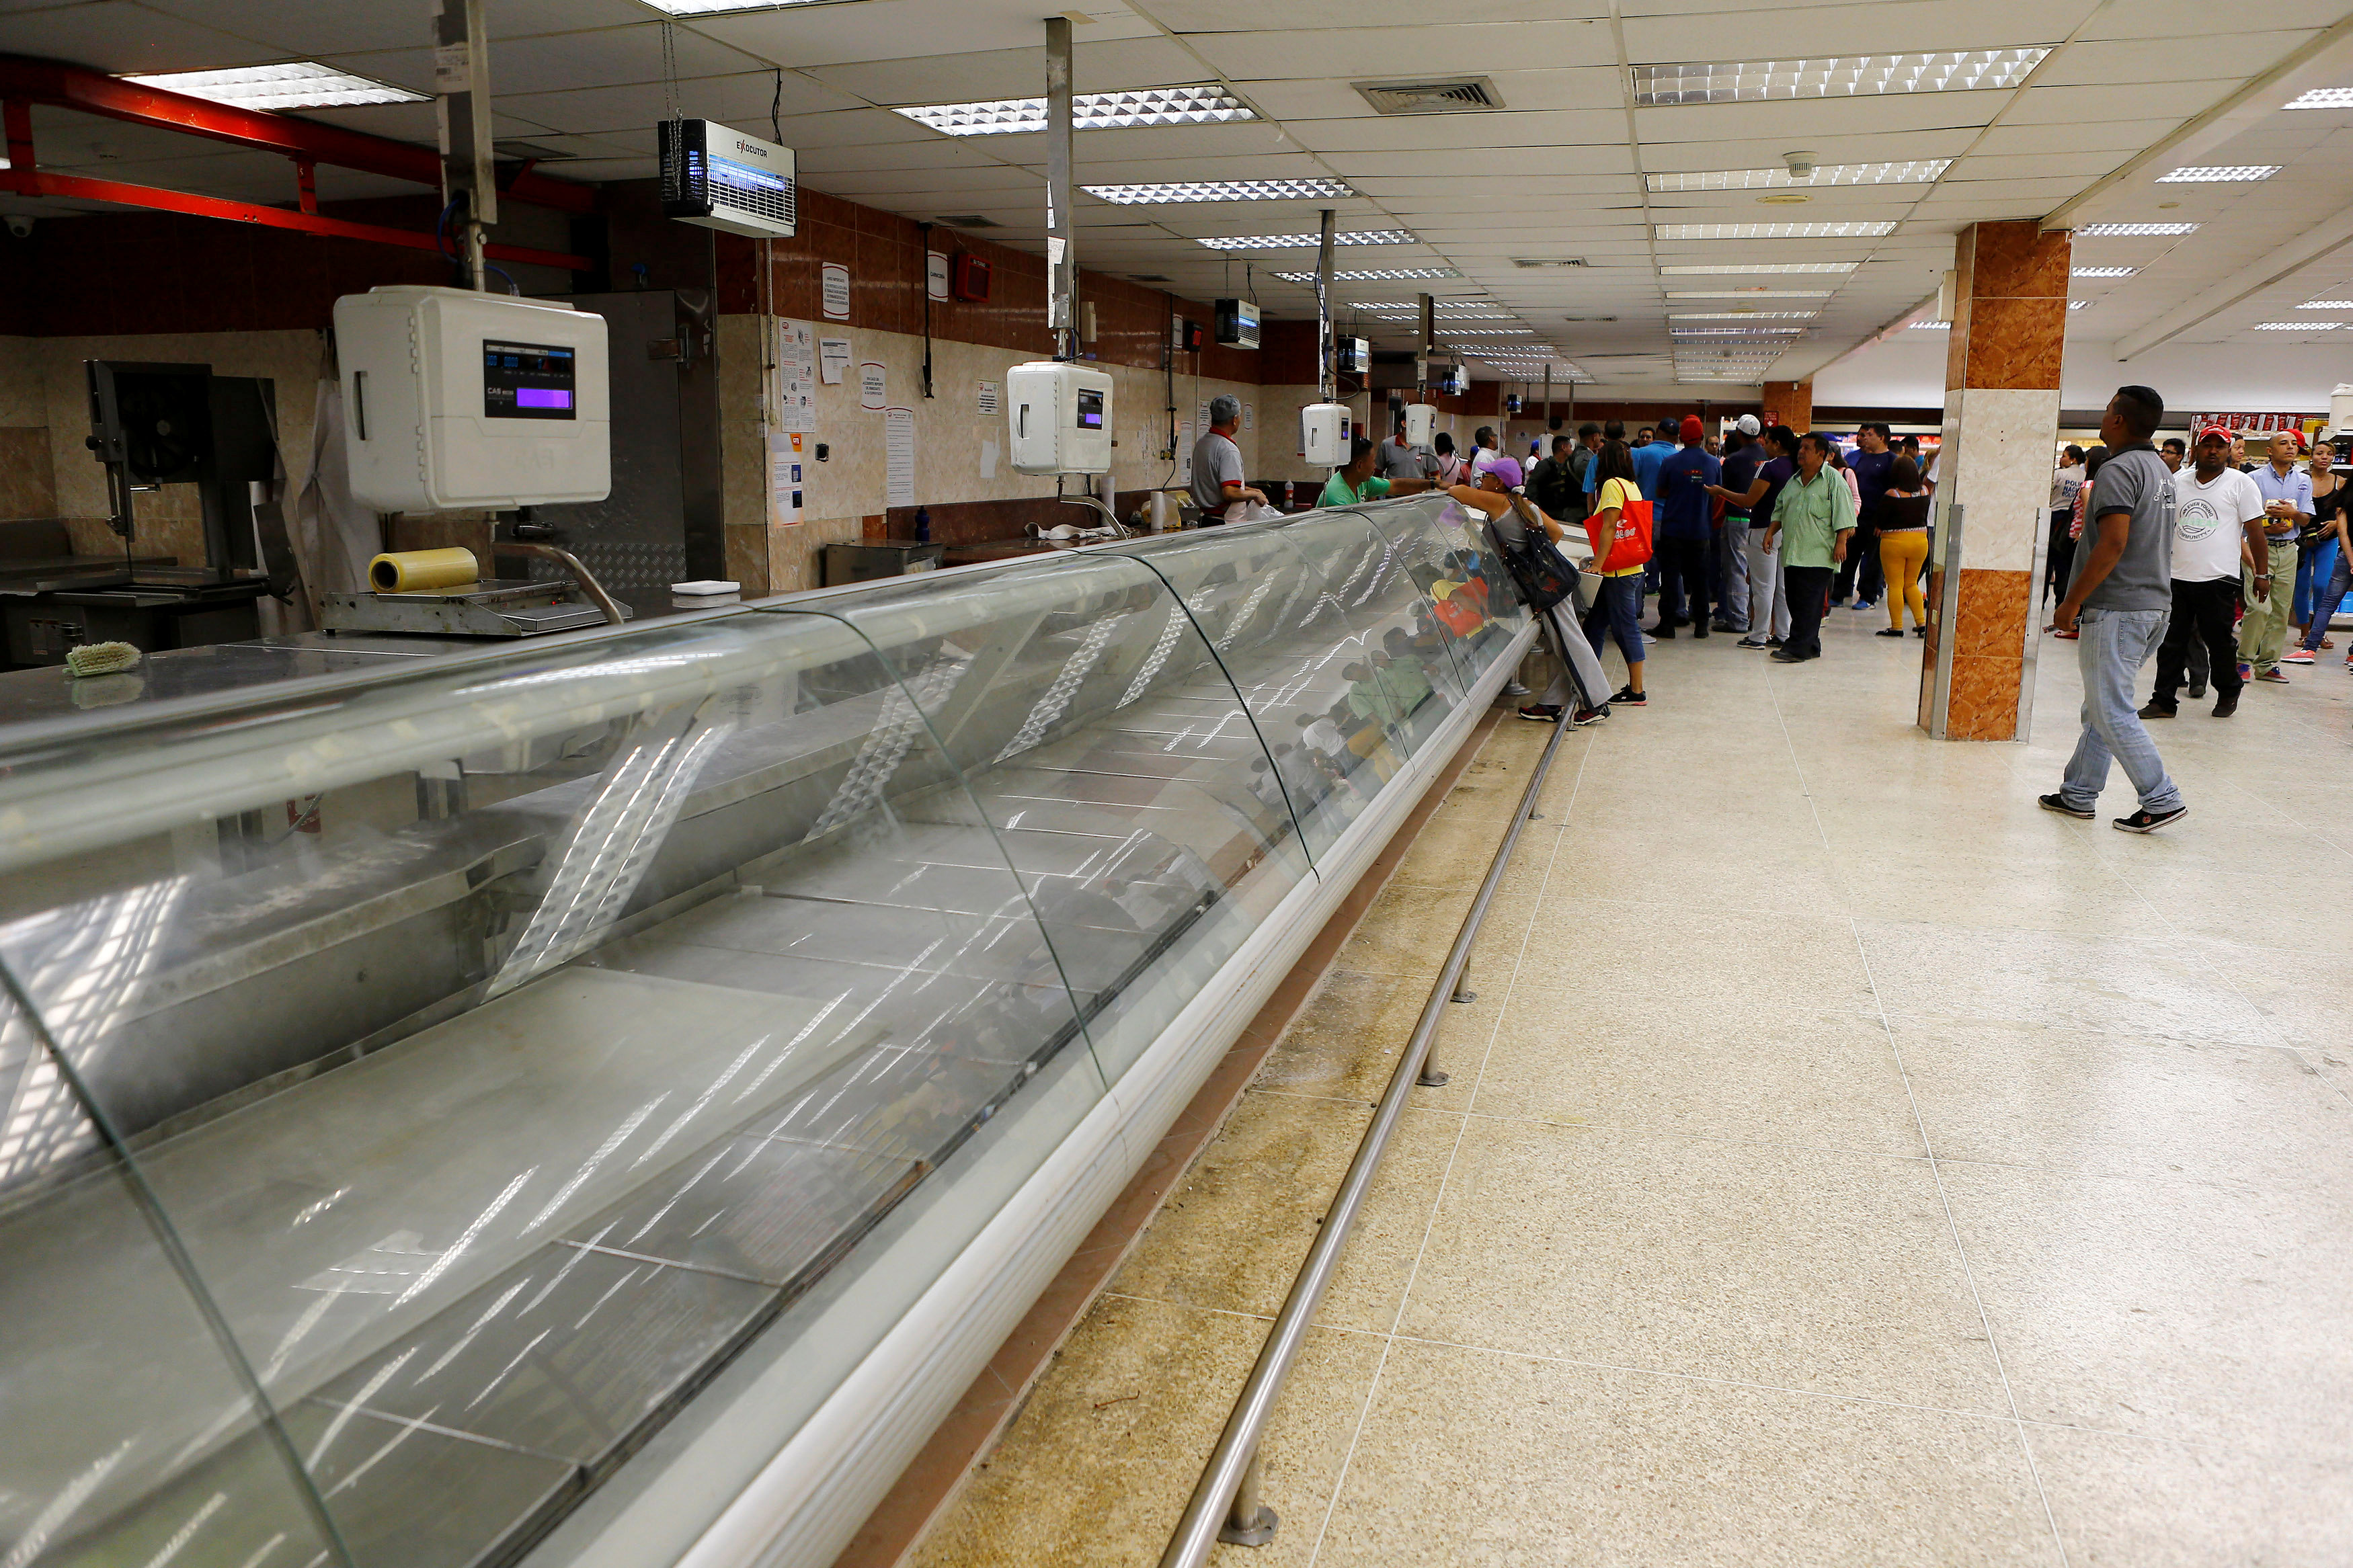 An empty refrigerator is seen inside a supermarket in Caracas, Venezuela, June 10, 2016. REUTERS/Ivan Alvarado